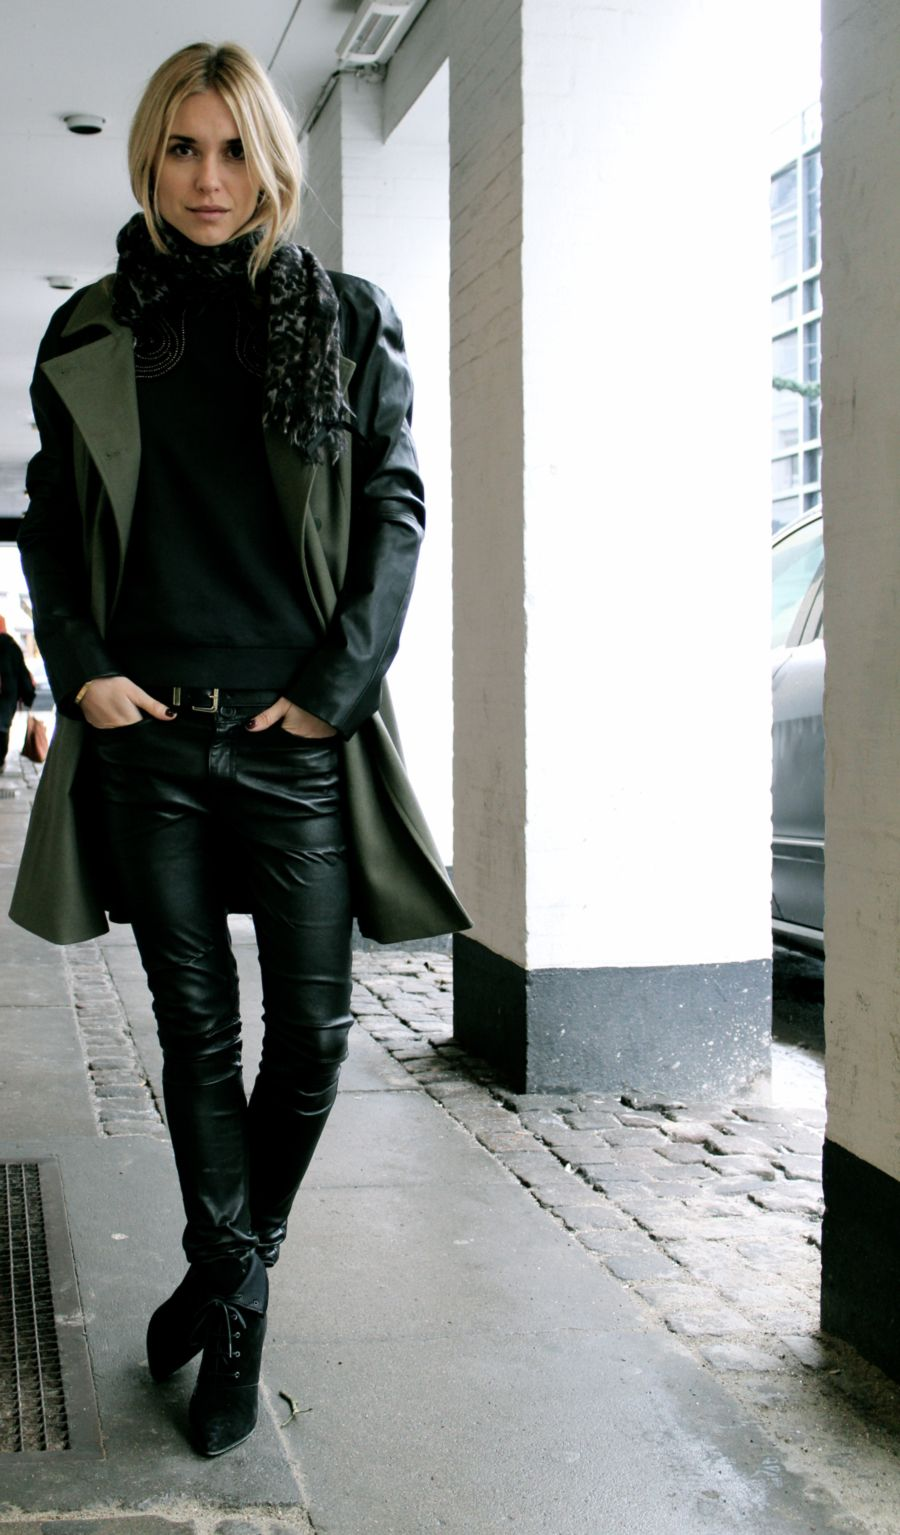 Leather pants done right.